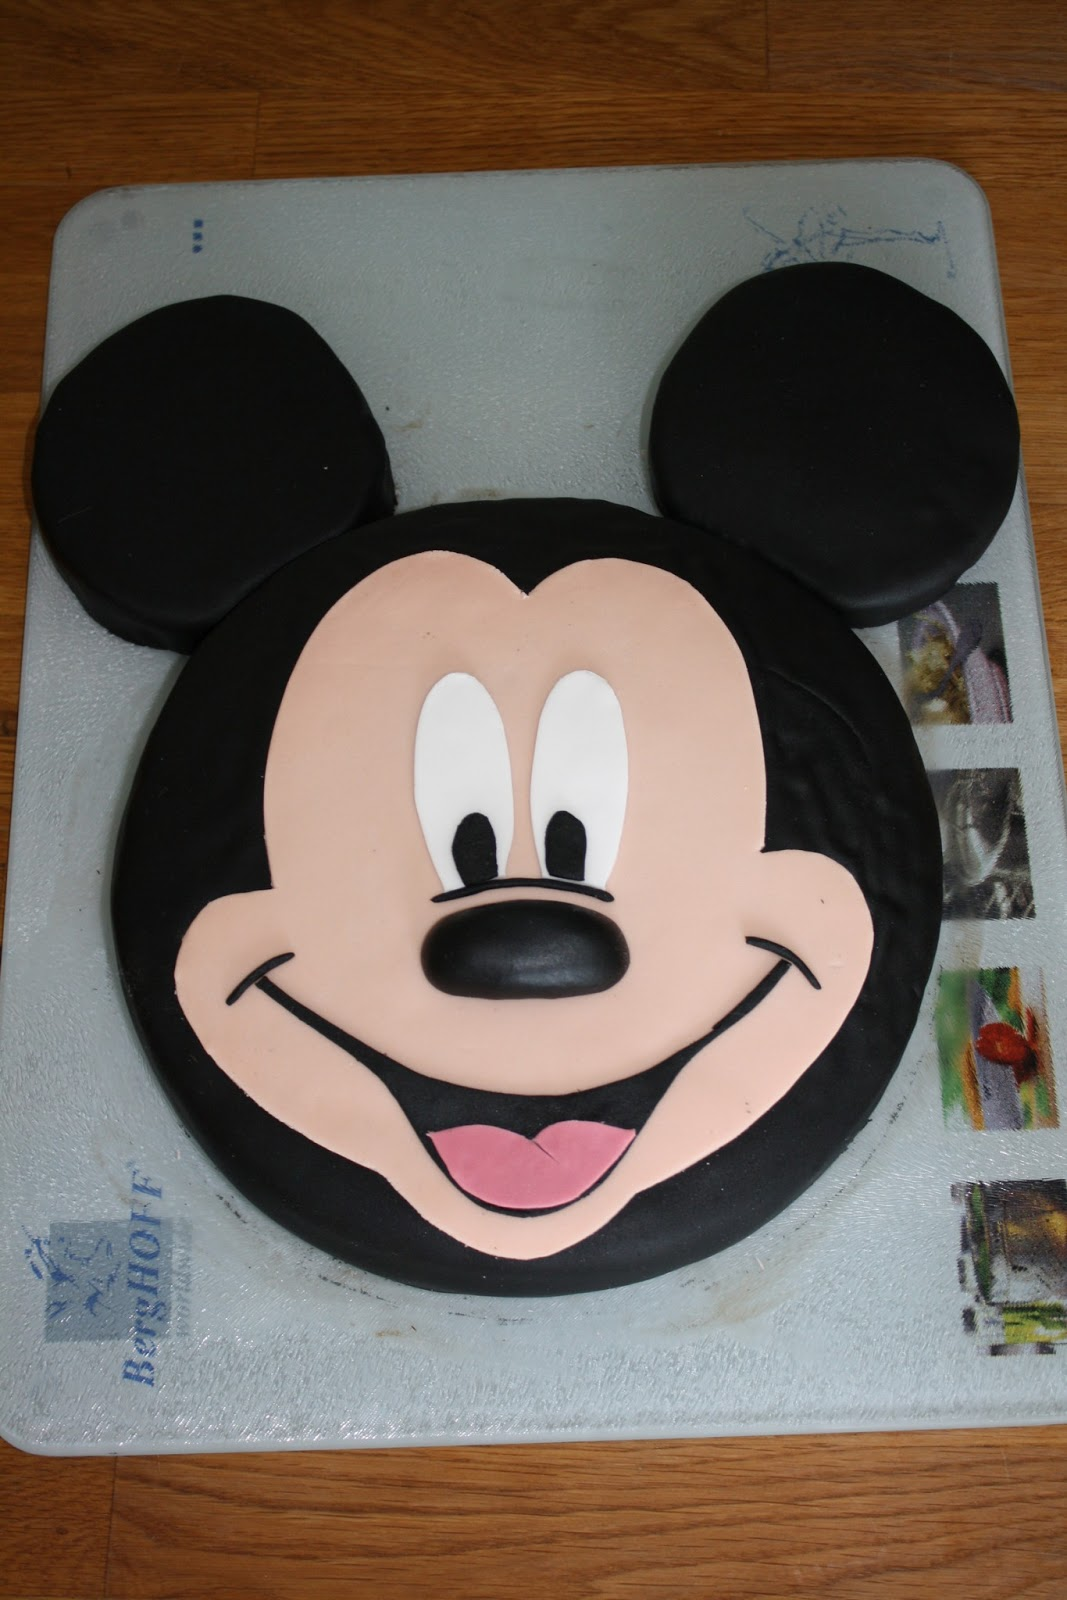 Gateau mickey gateauxamoi disney sweet kate cake - Revetement mural cuisine ikea ...